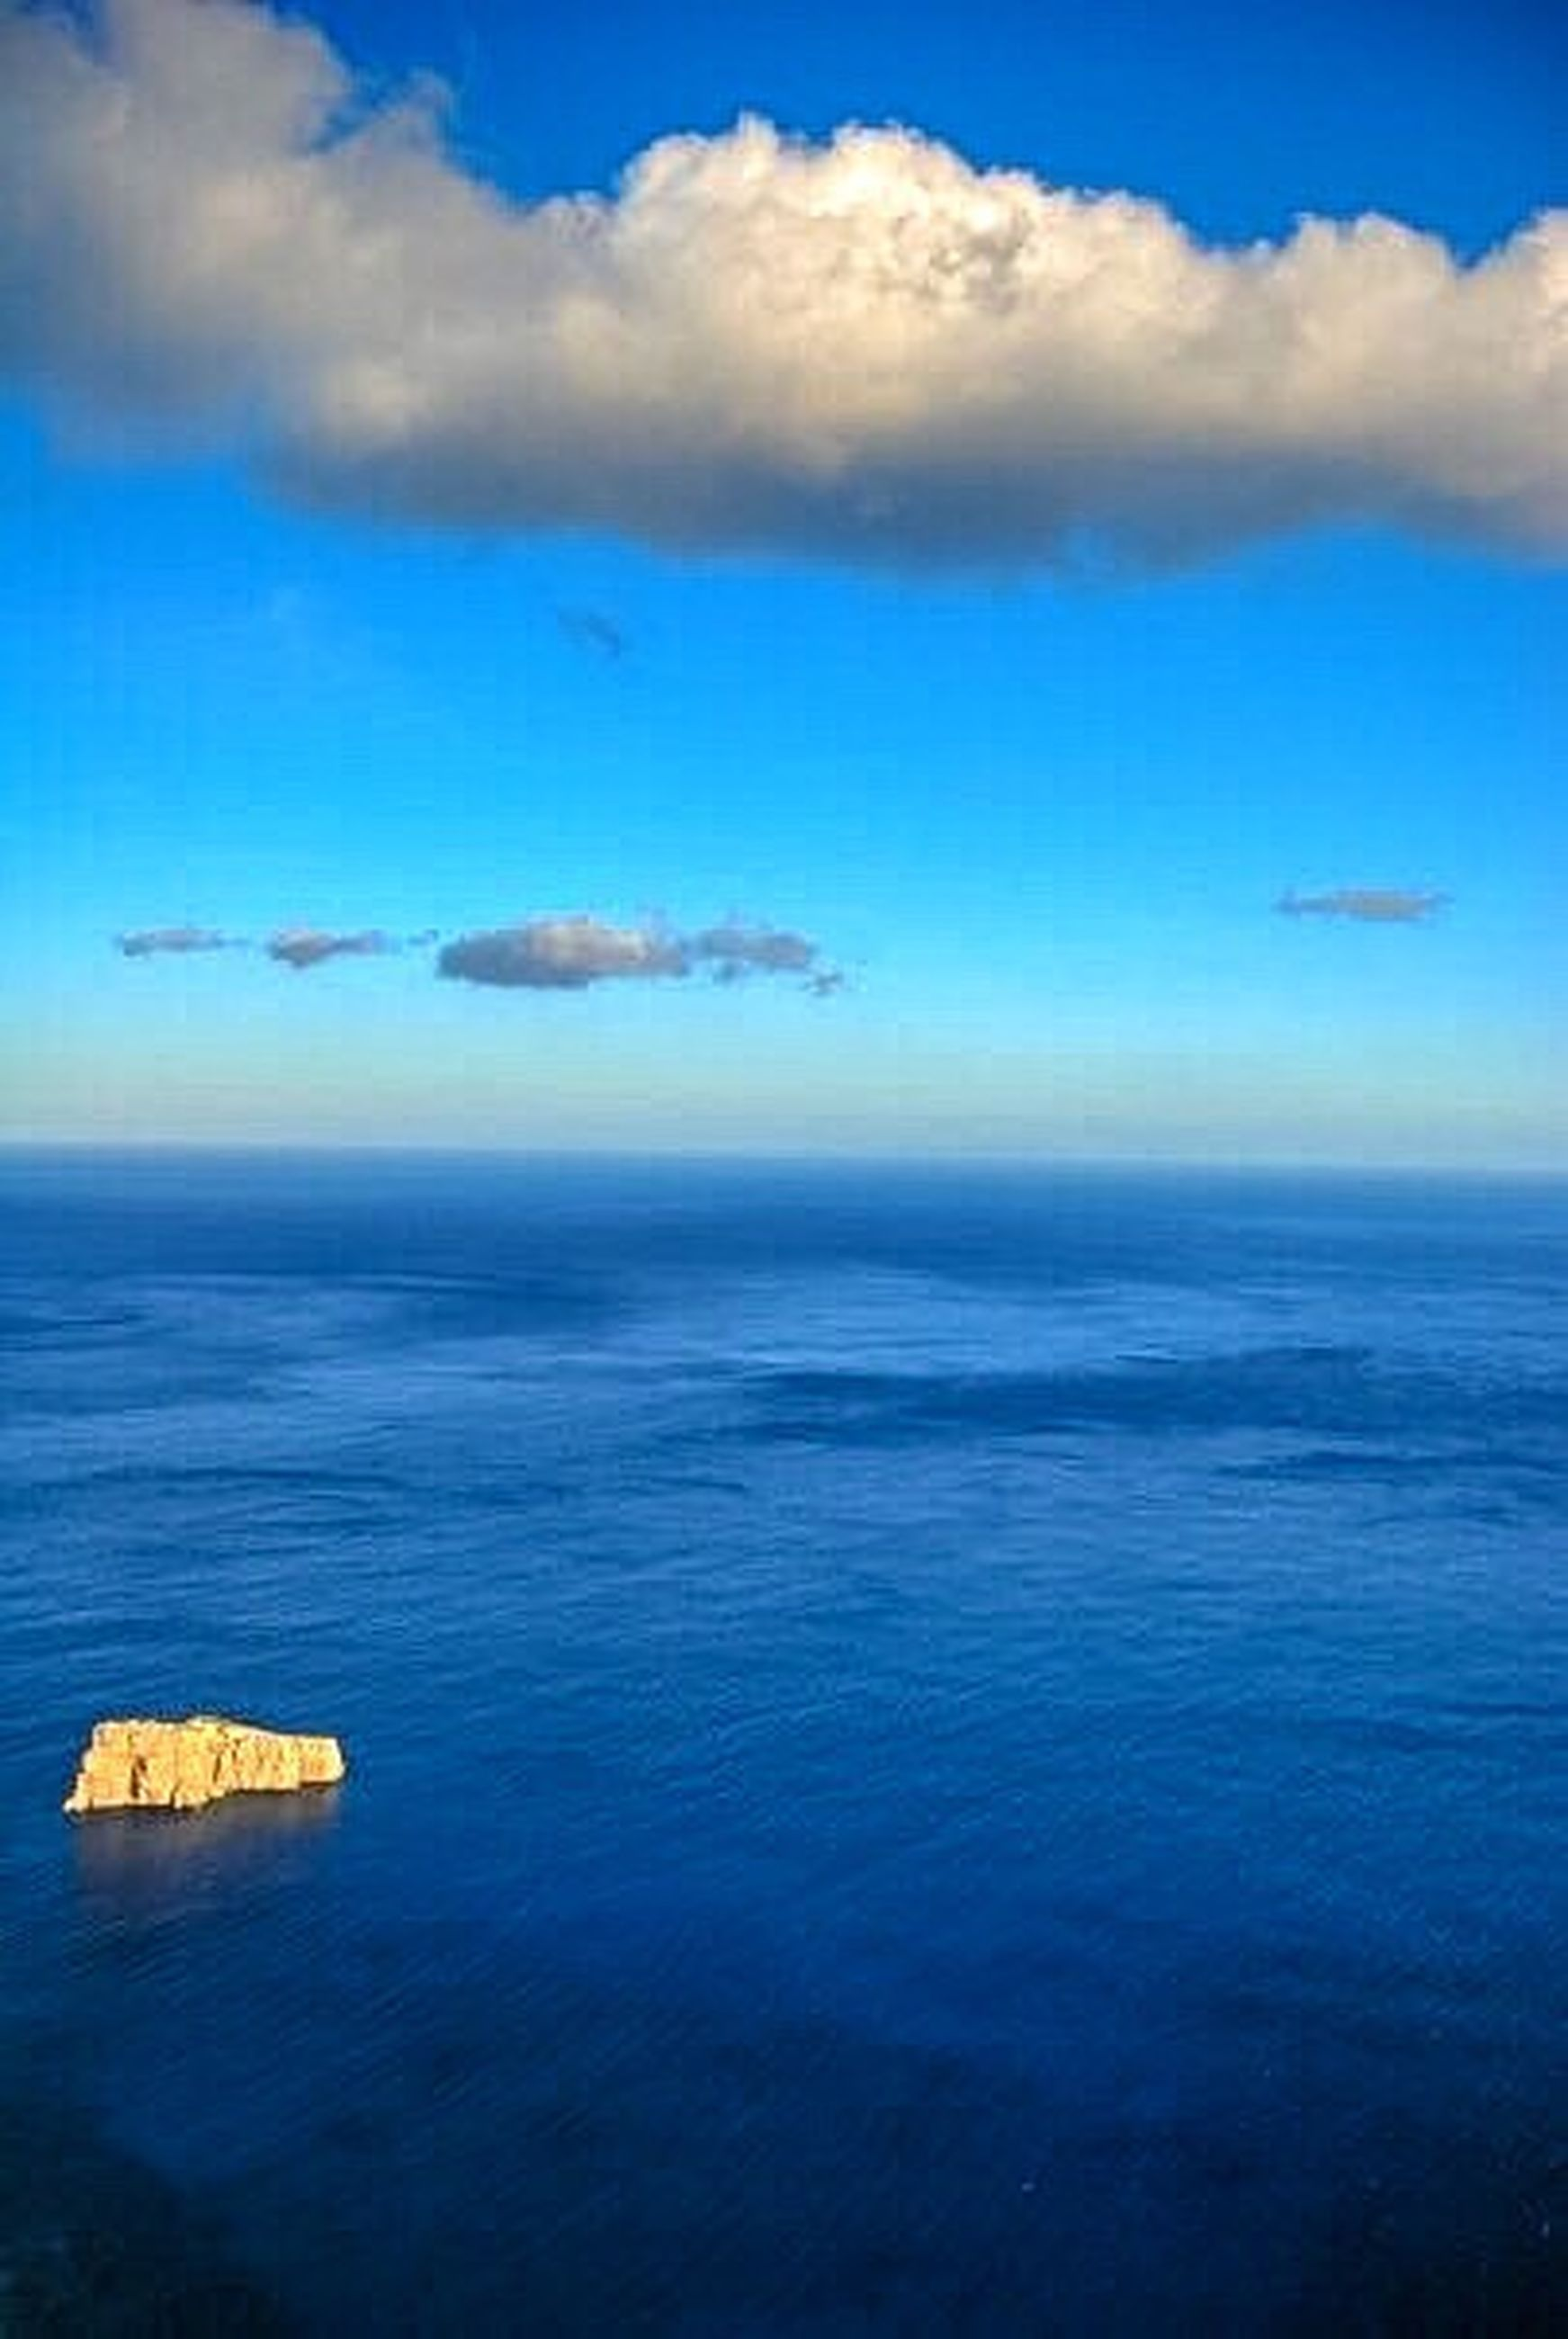 sea, water, horizon over water, blue, scenics, tranquil scene, tranquility, beauty in nature, seascape, sky, majestic, idyllic, waterfront, calm, nature, ocean, cloud, cloud - sky, non-urban scene, coastline, outdoors, day, atmosphere, aerial view, vibrant color, rock formation, solitude, no people, remote, vacations